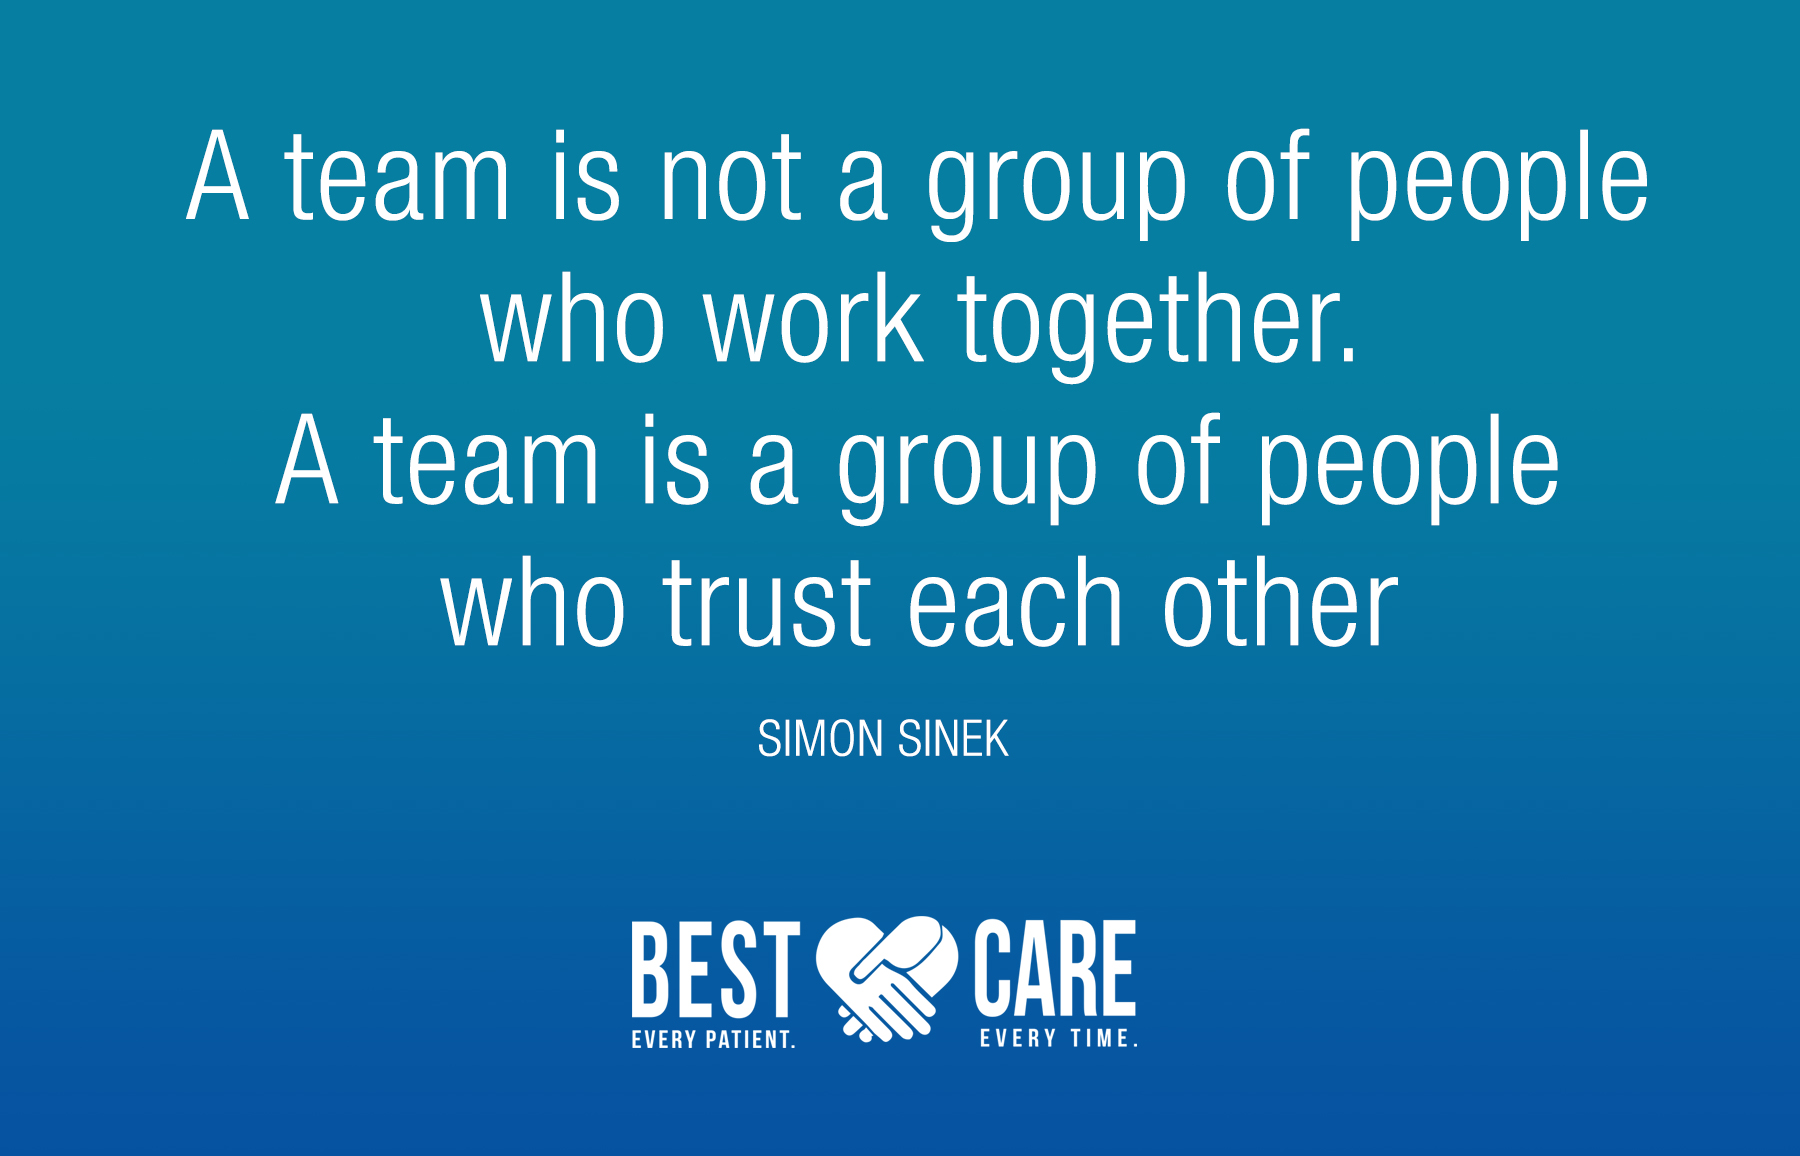 A team is not a group of people who work together. A team is a group of people who trust each other